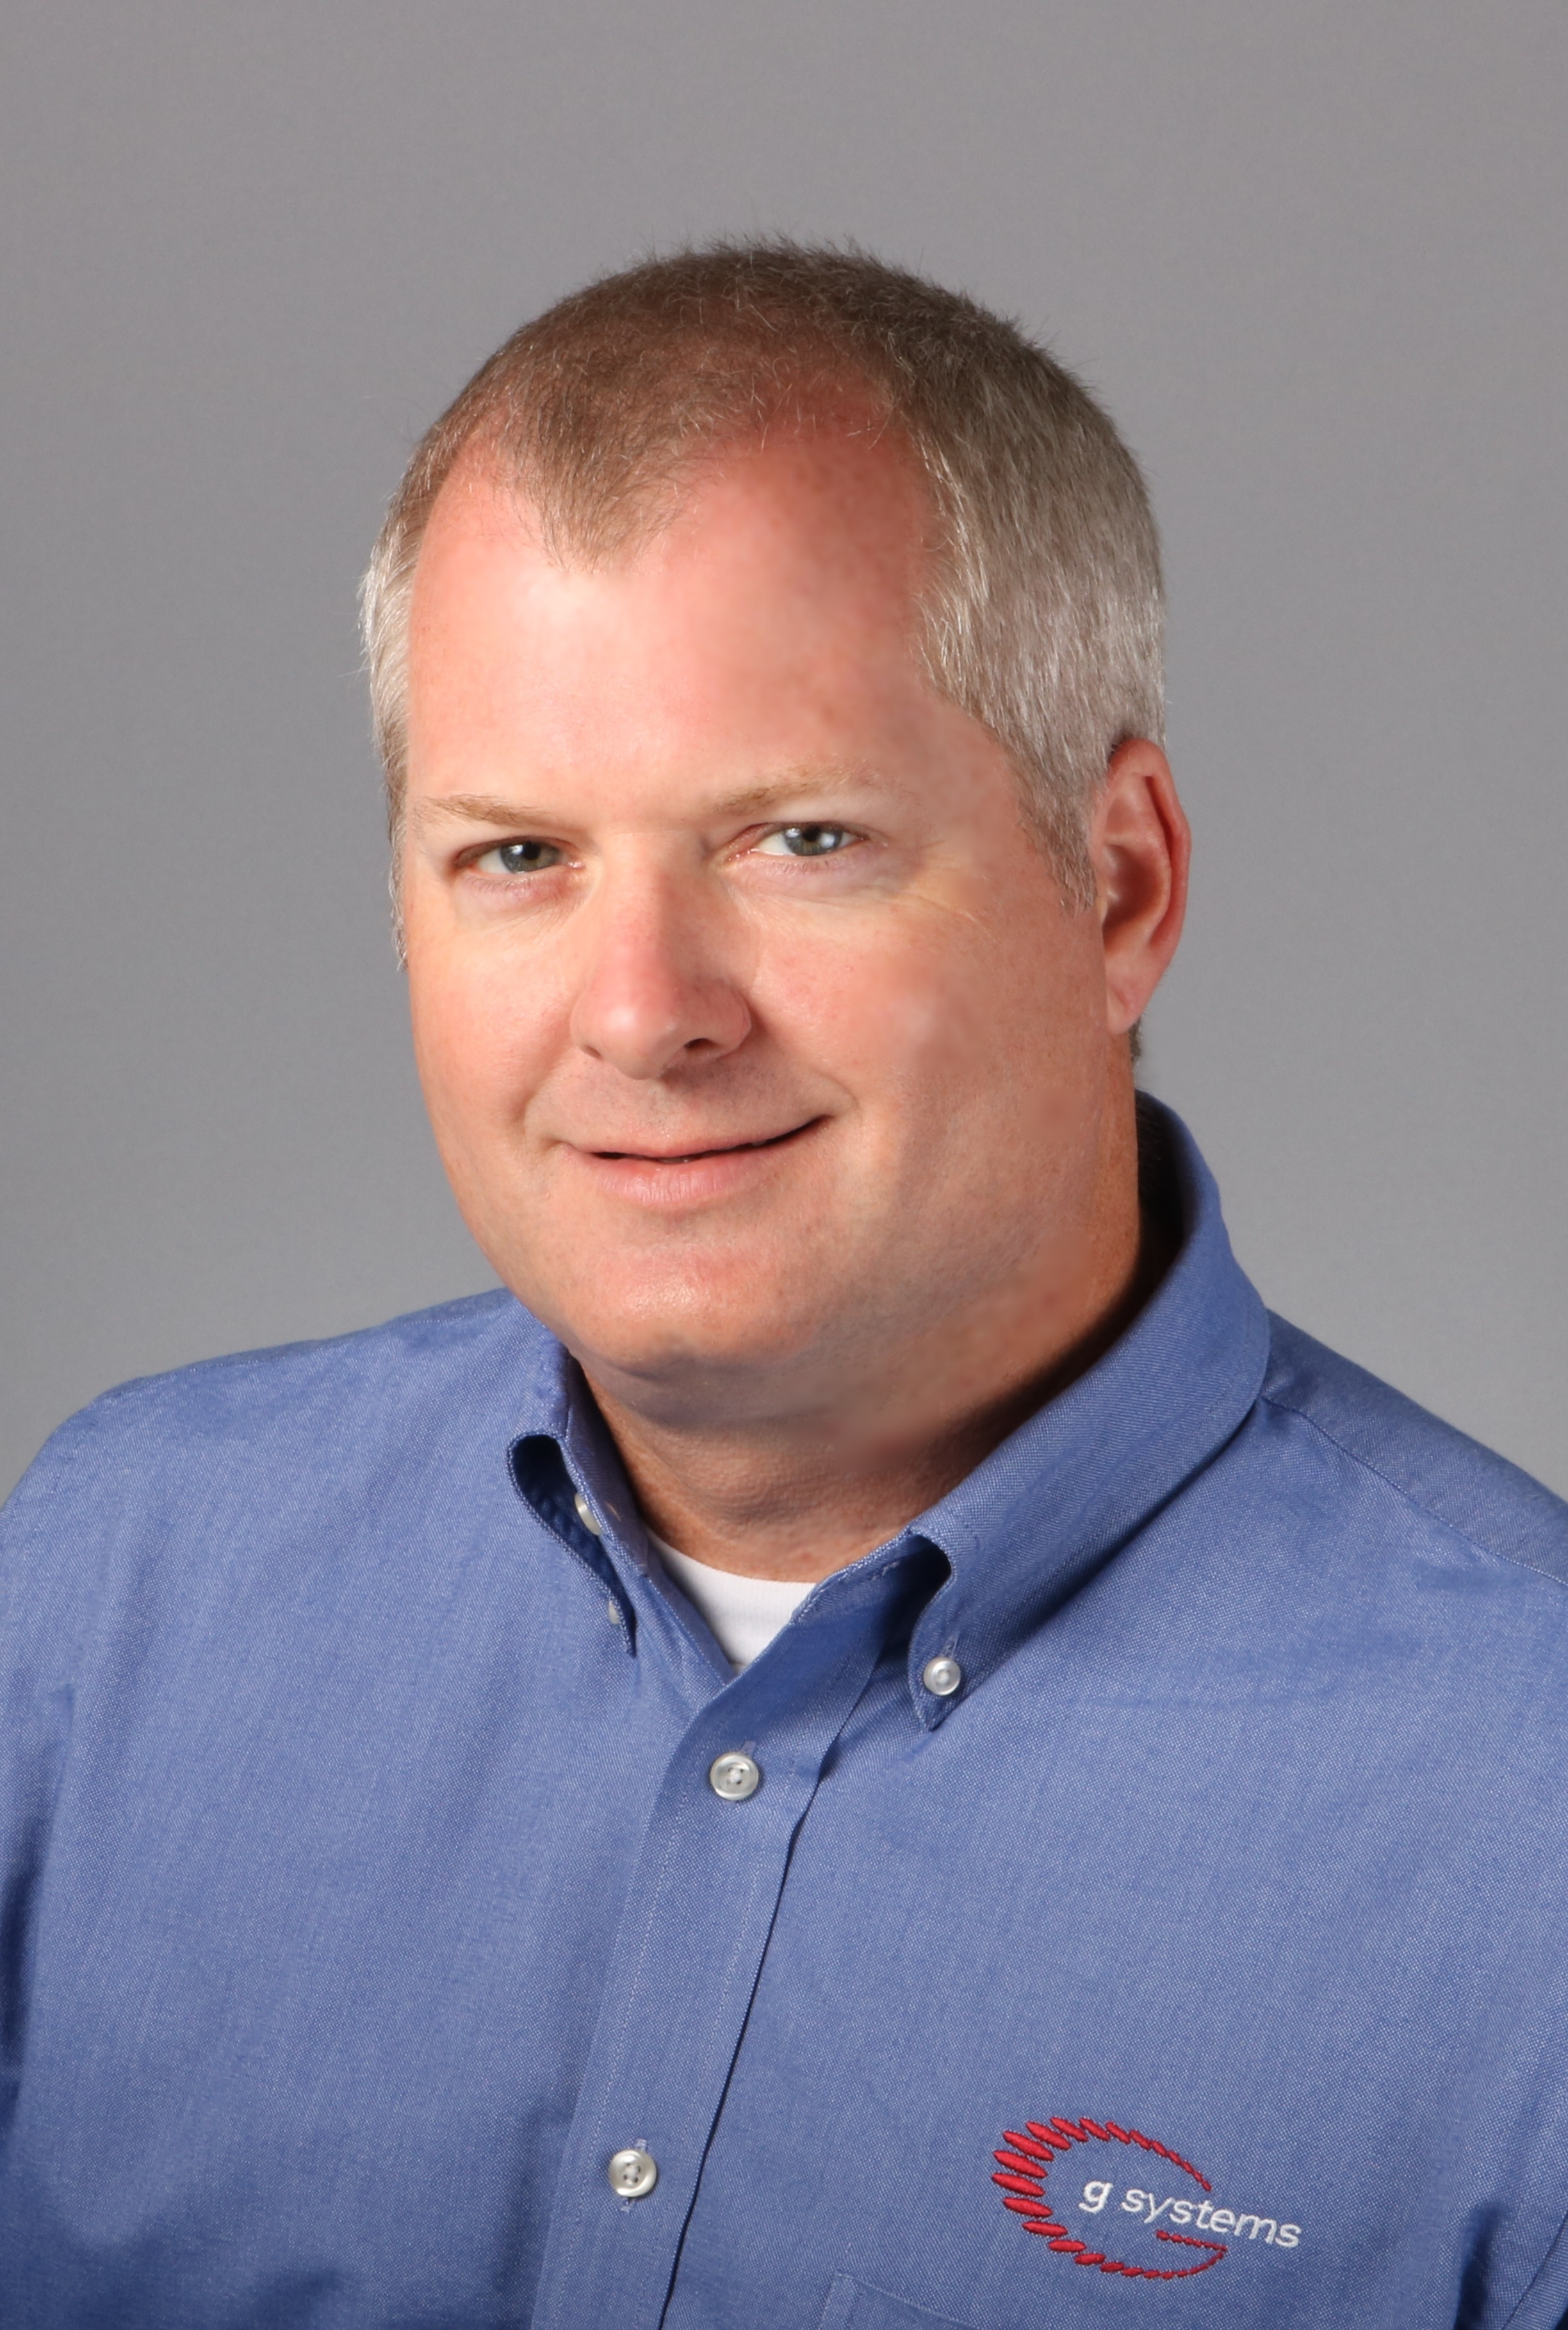 Dave Baker - Test and Measurement Expert, VP of Engineering